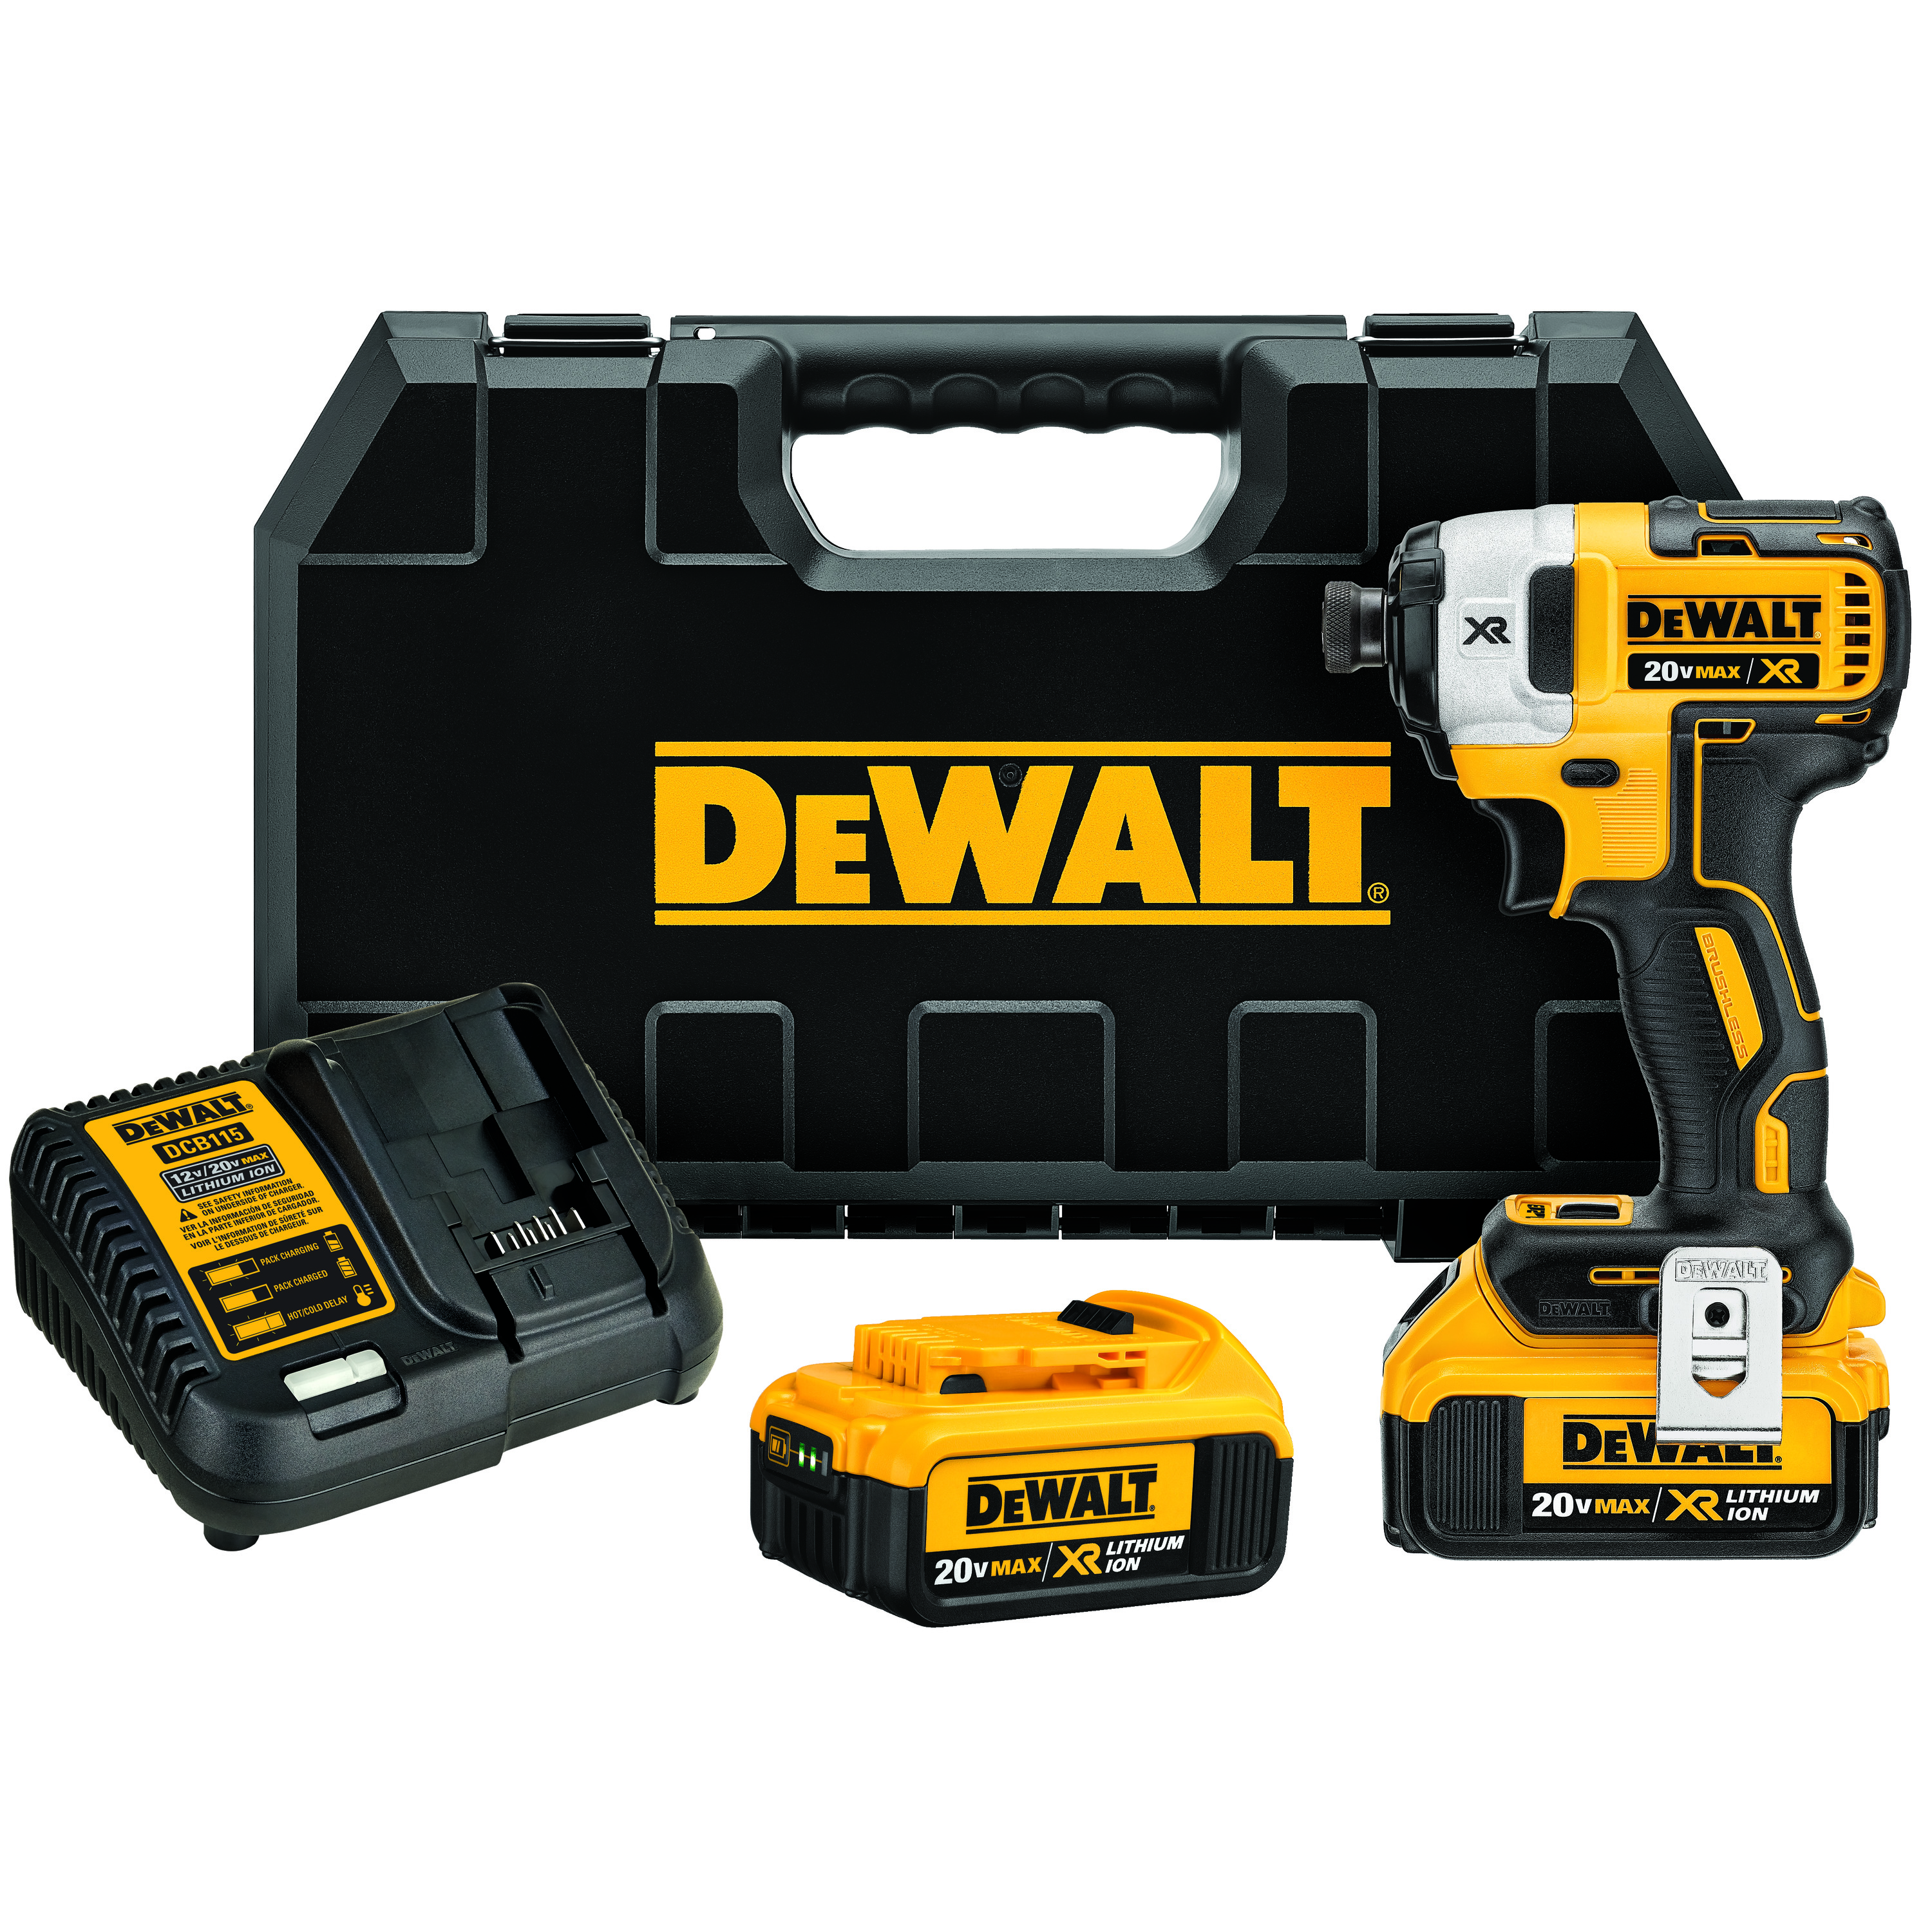 DeWALT® 20V MAX* MATRIX™ XR™ DCF887M2 Compact Lightweight Cordless Impact Driver Kit, 1/4 in Quick-Release Drive, 3600 ipm, 1825 in-lb Torque, 20 V, 5.3 in OAL